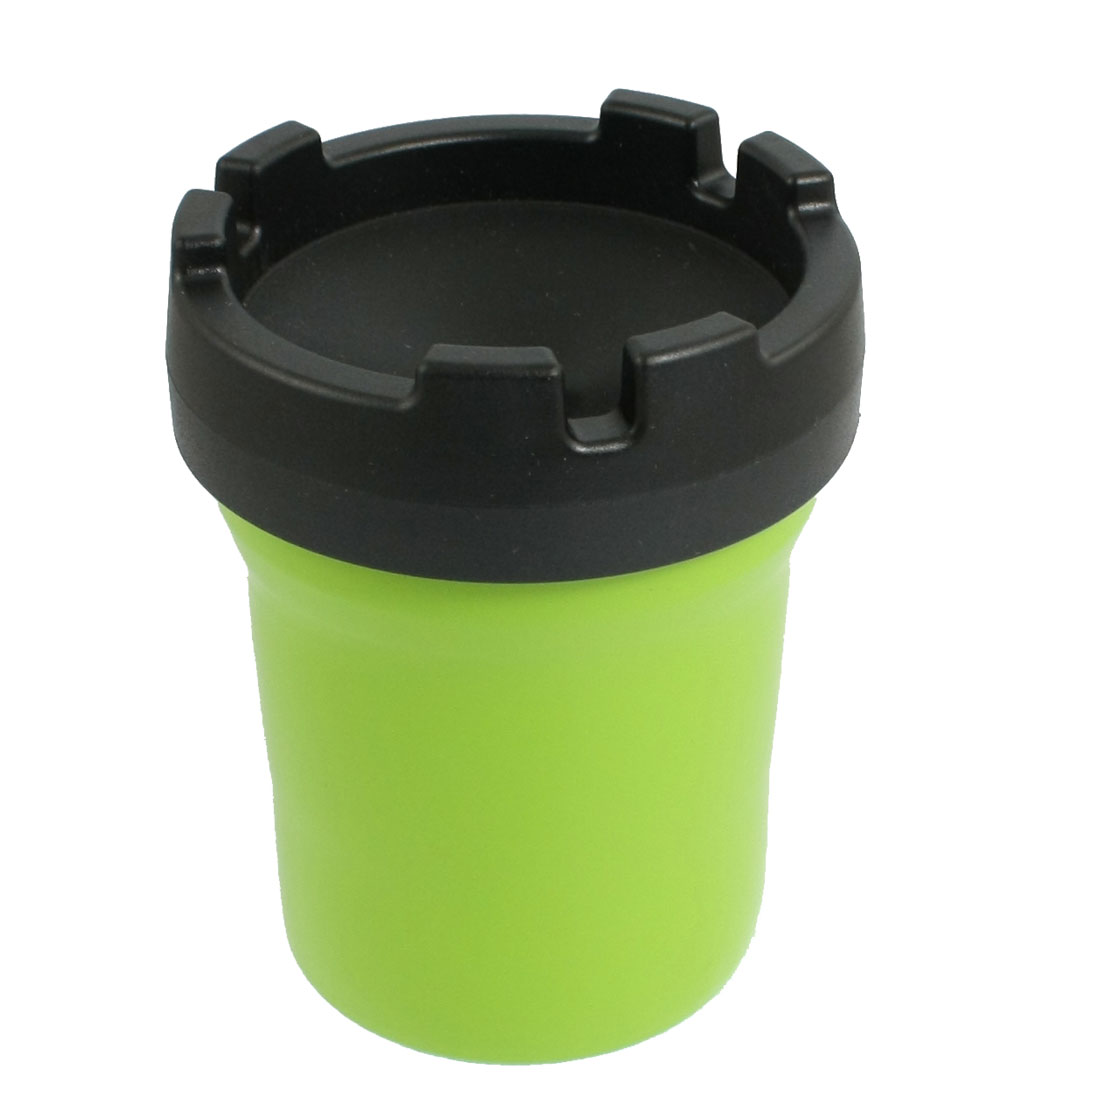 Car Truck SUV Automobile Butt Bucket Ashtray Holder Black Green